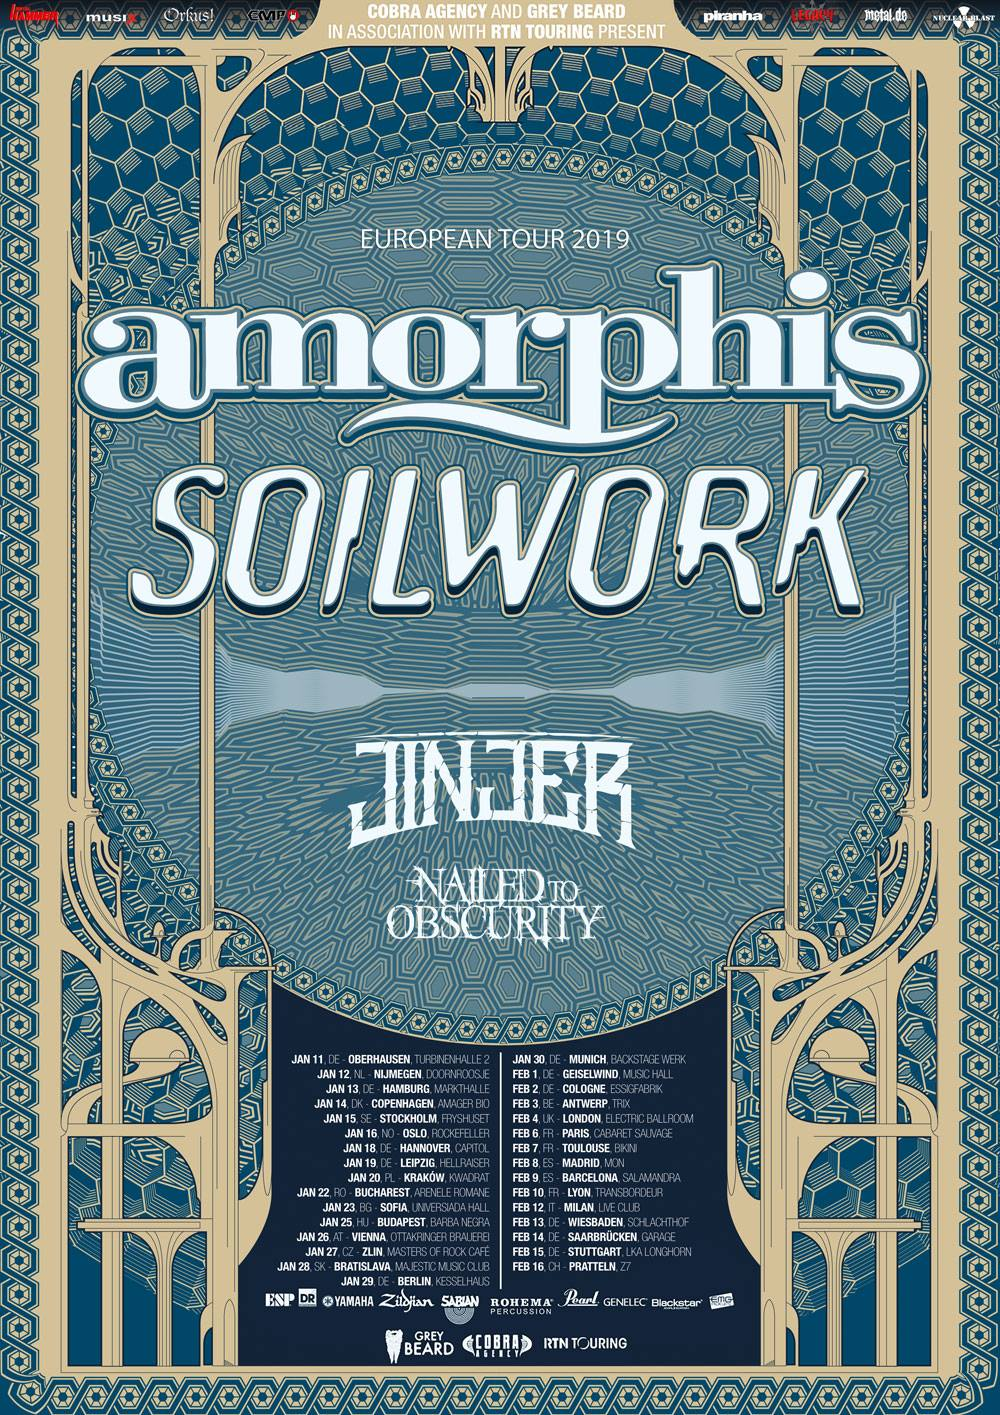 Nailed To Obscurity Tour With Amorphis, Soilwork, Jinjer